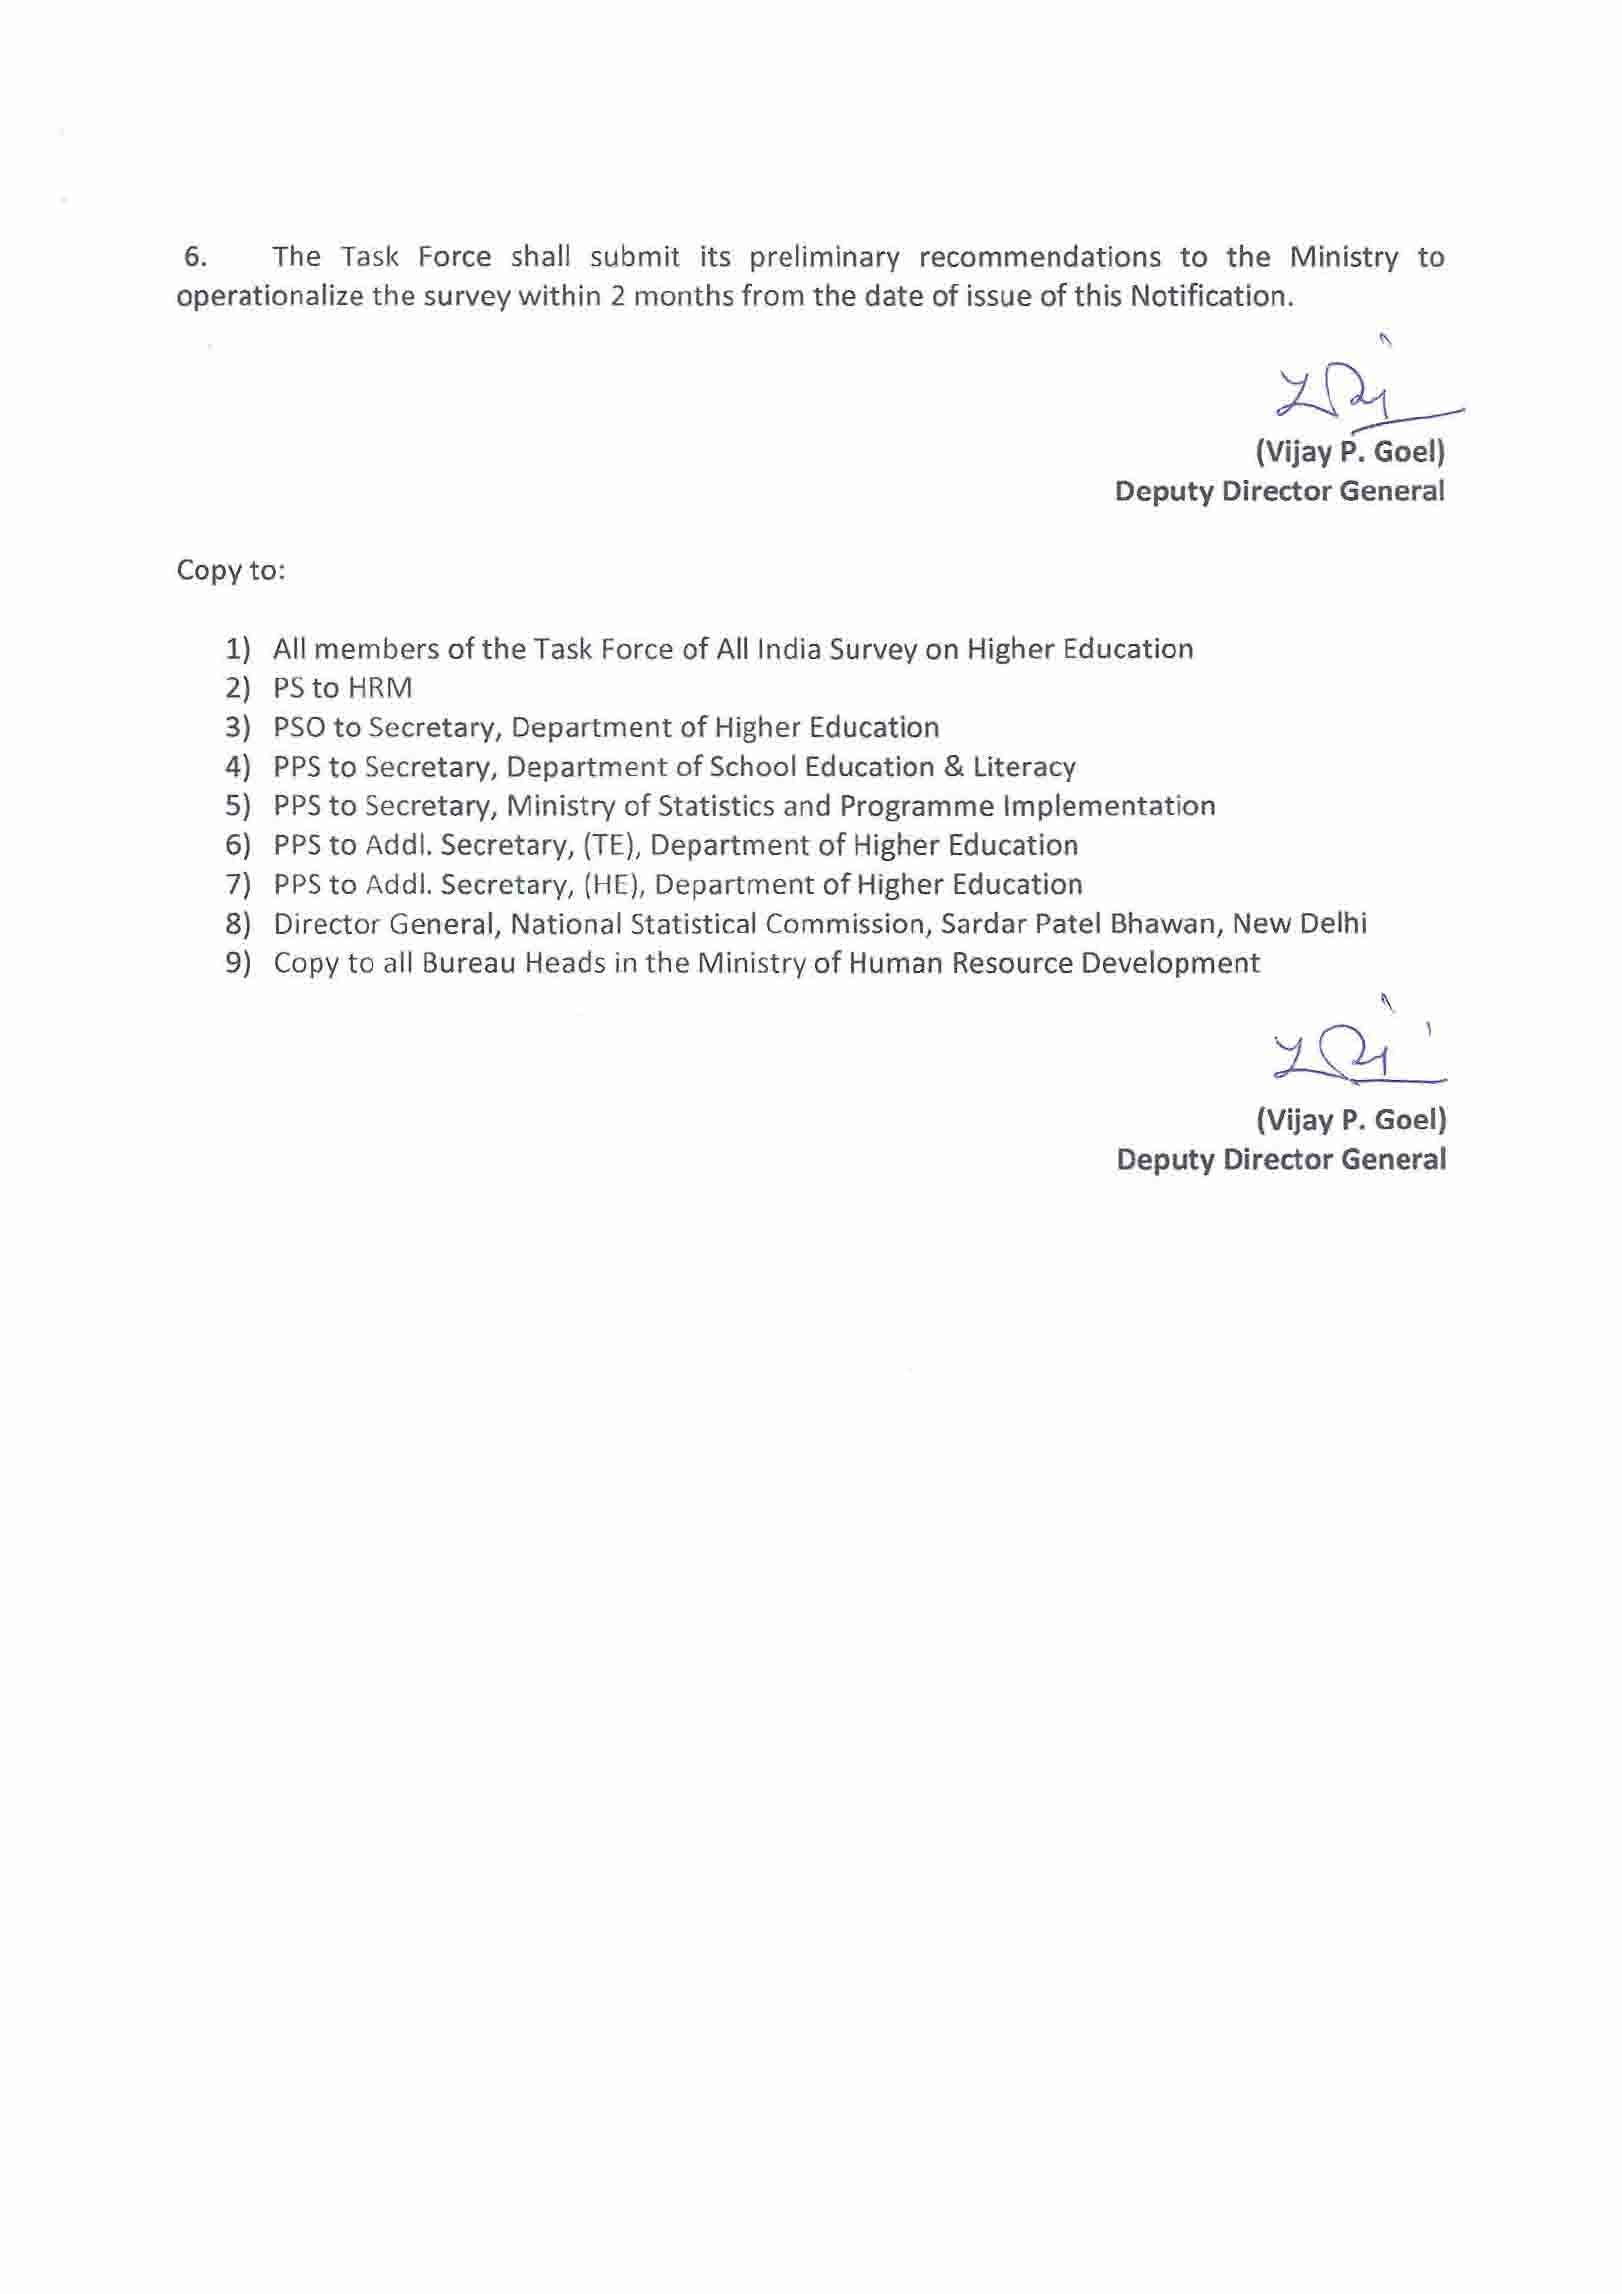 6. The Task Force shall submit its preliminary recommendations to the Ministry to operationalize the survey within 2 months from the date of issue of this Notification. h Copy to: (Vijay P.